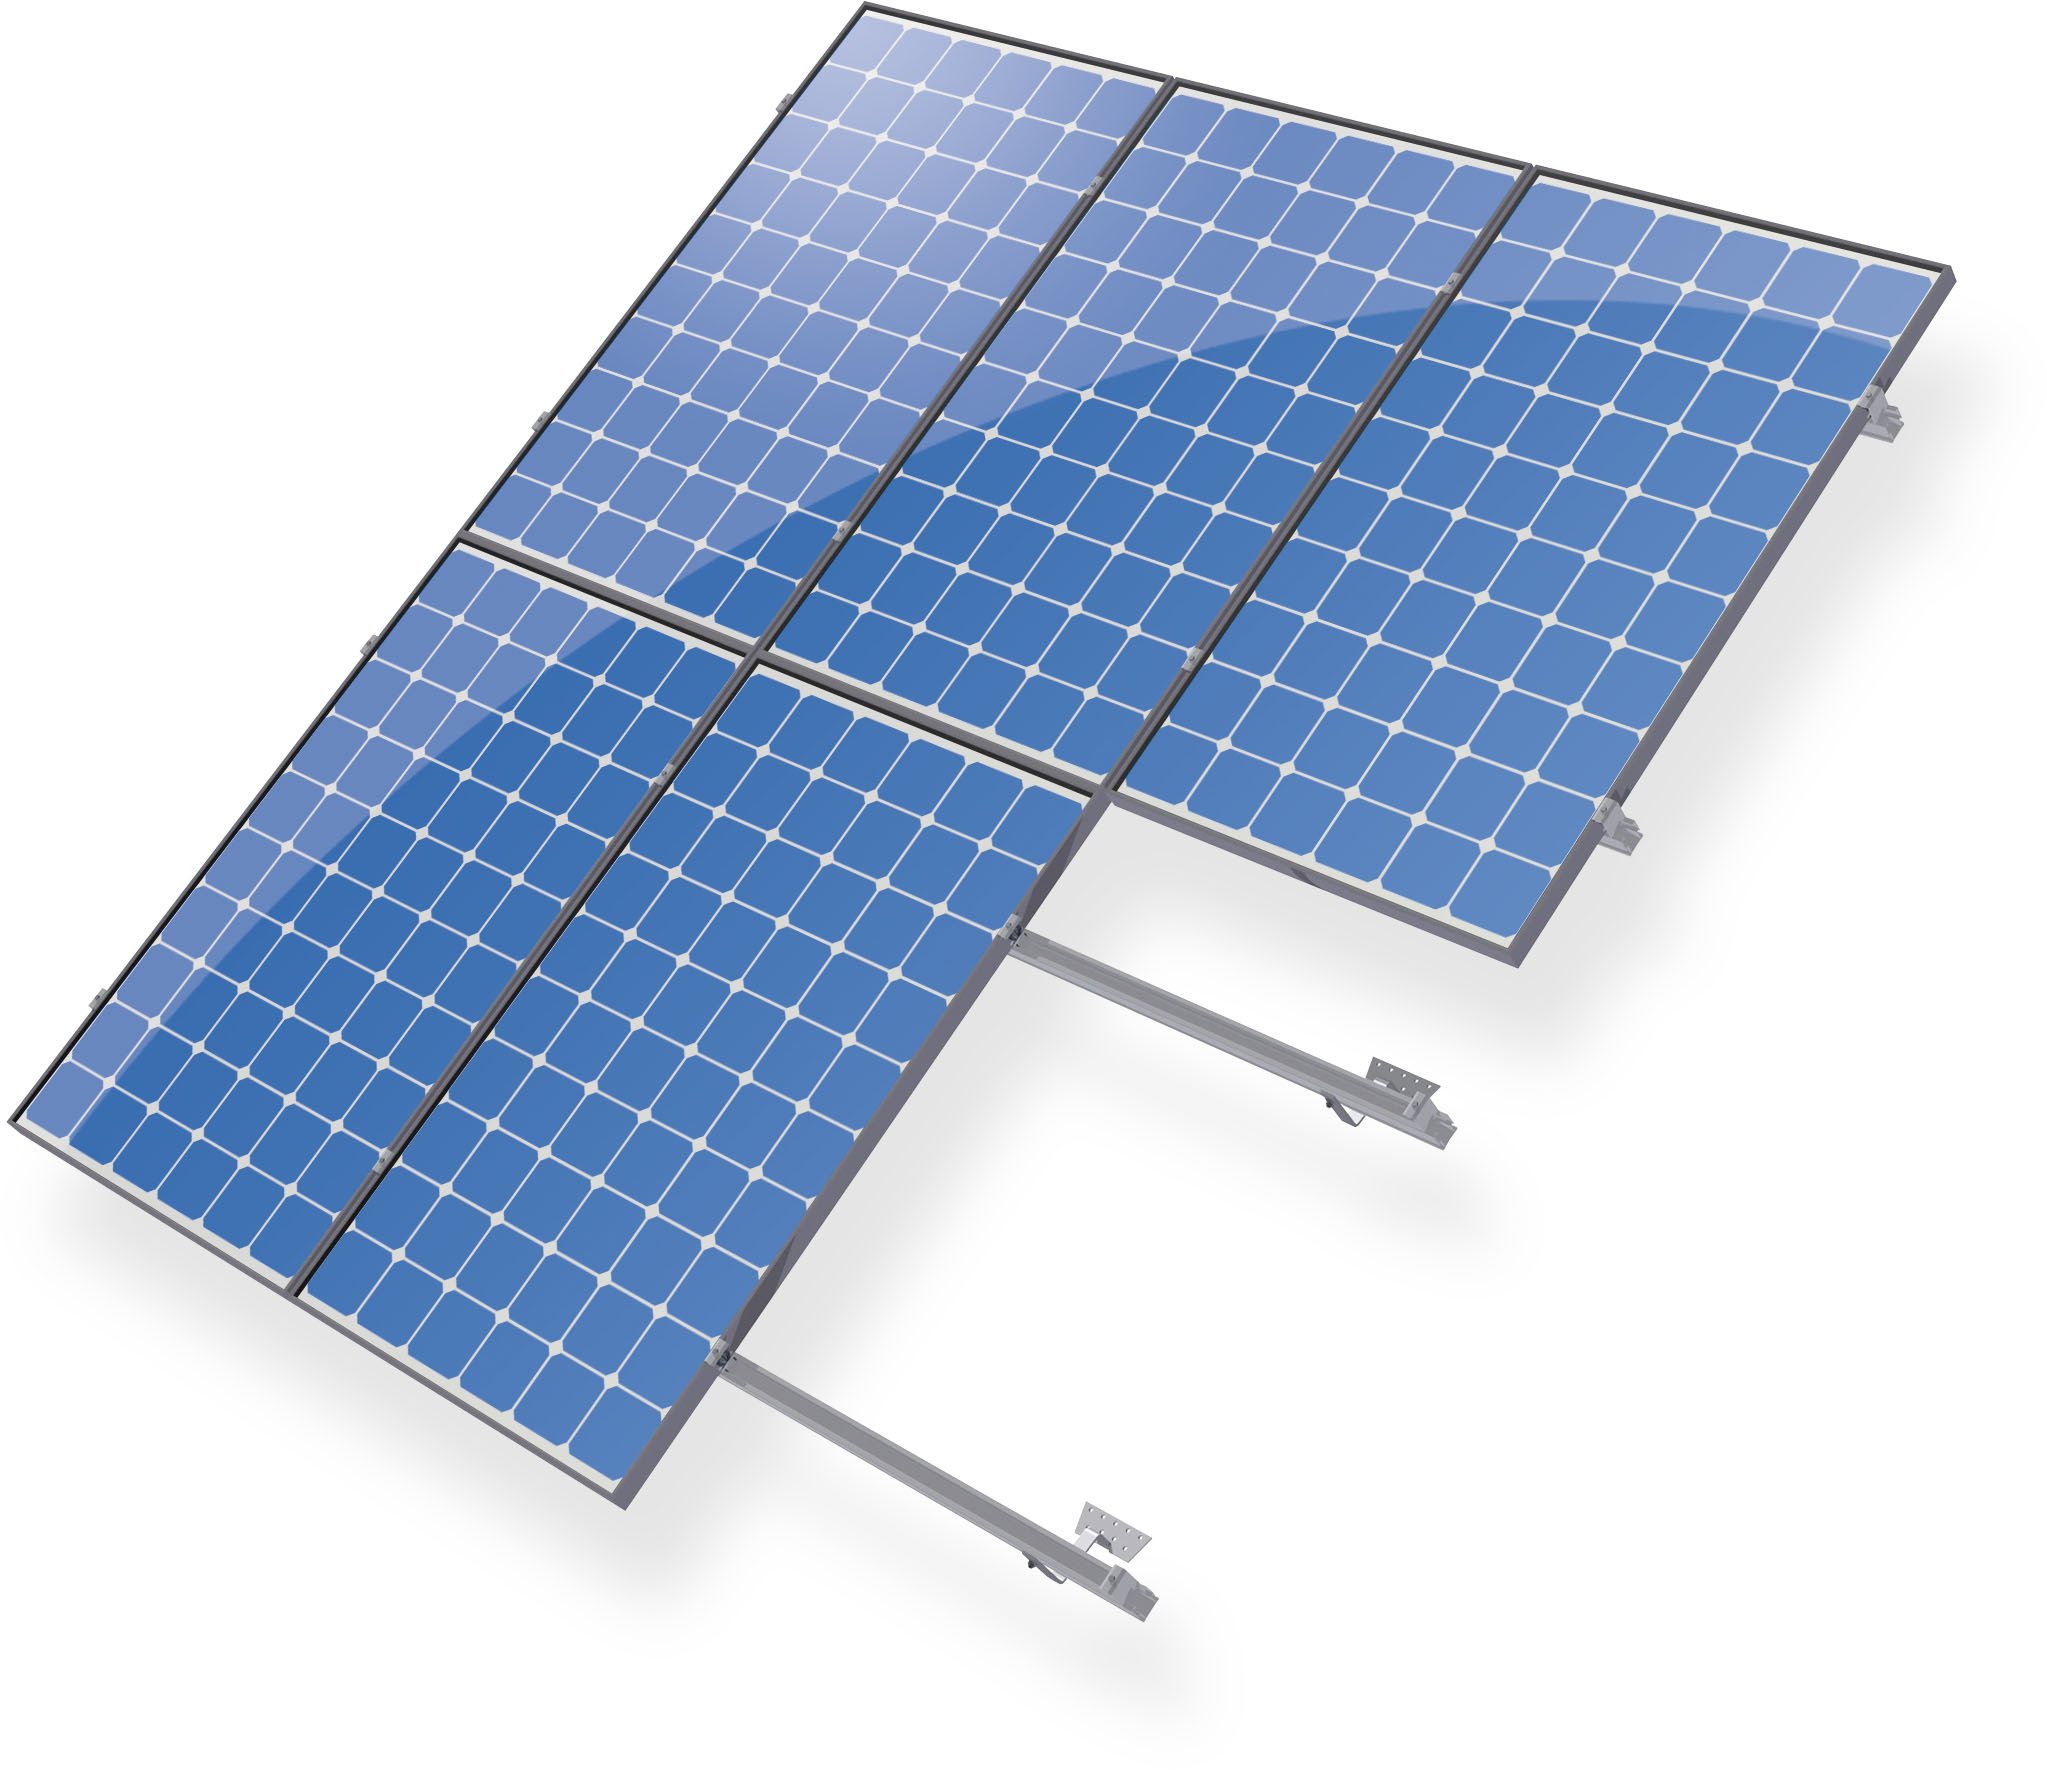 New Grants Available For Solar Electricity And Battery Storage Rexel Energy Solutions Ireland